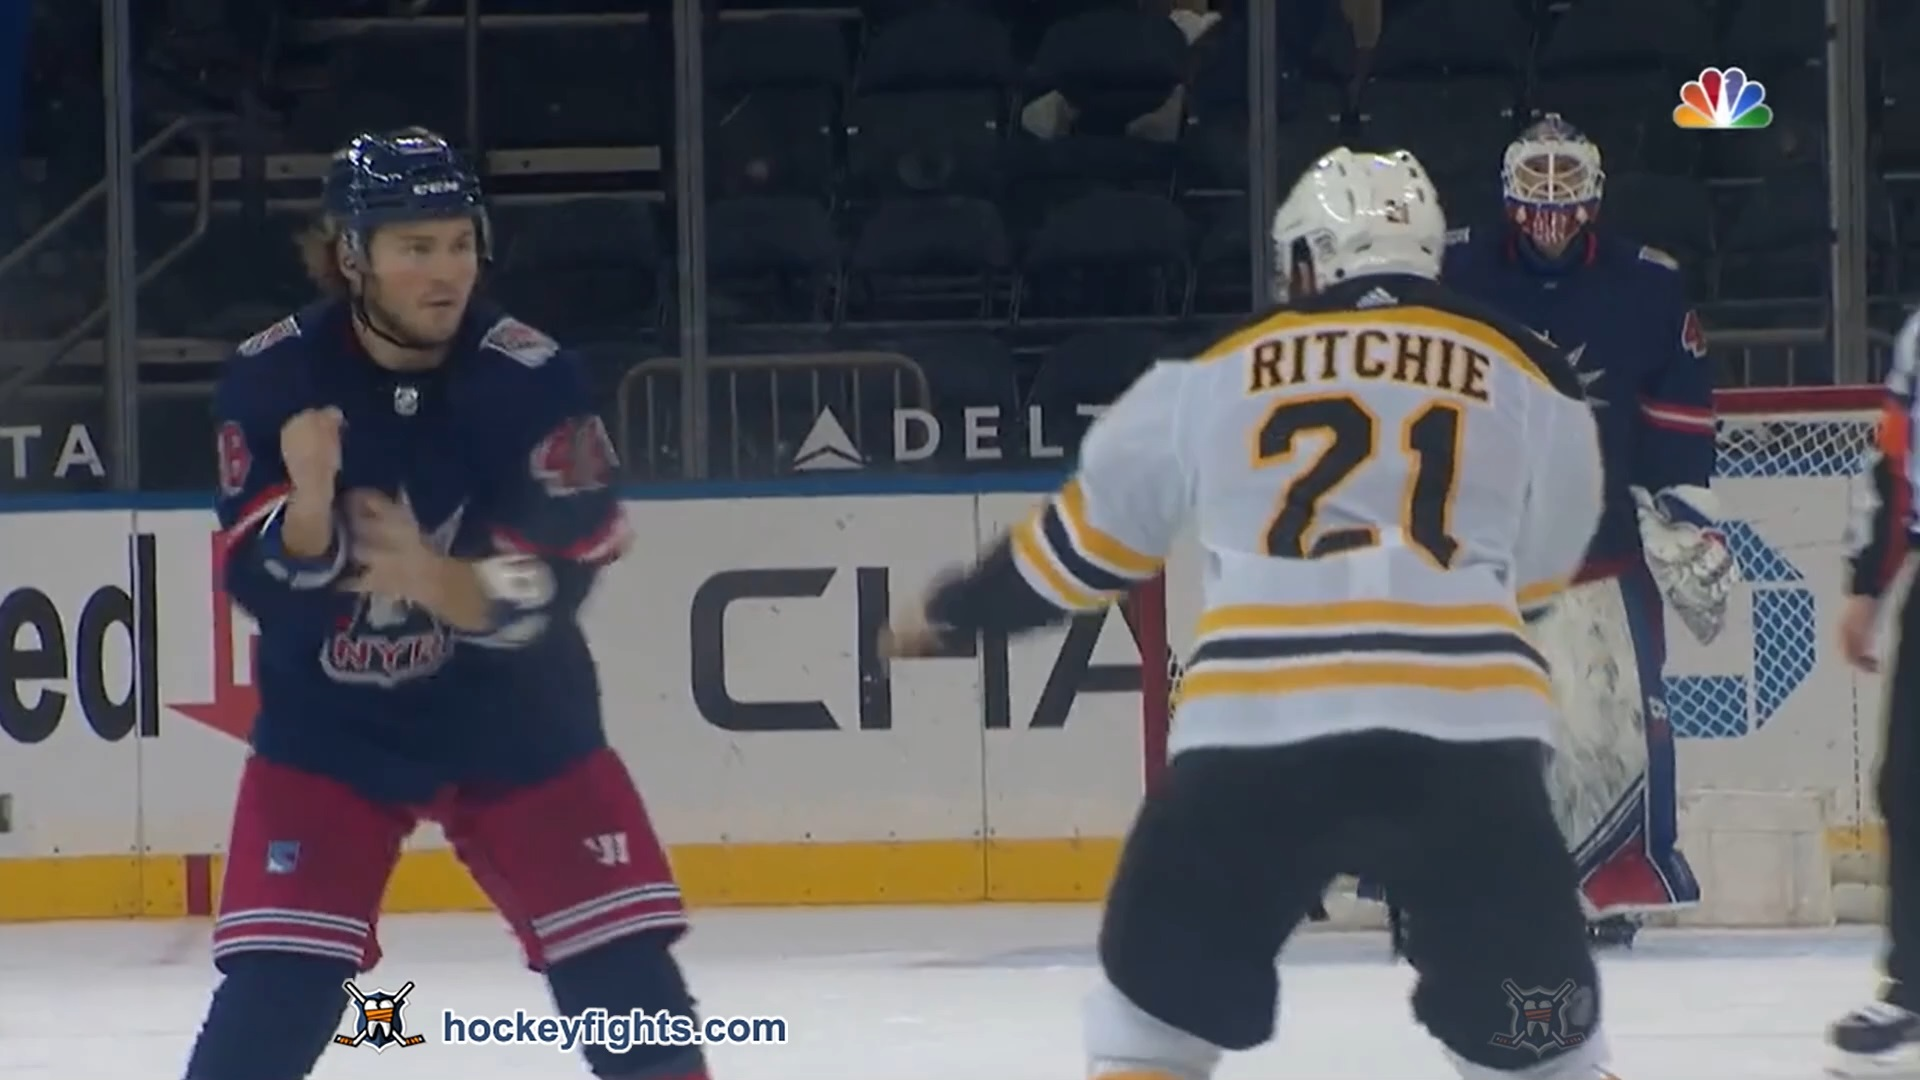 Brendan Lemieux vs. Nick Ritchie